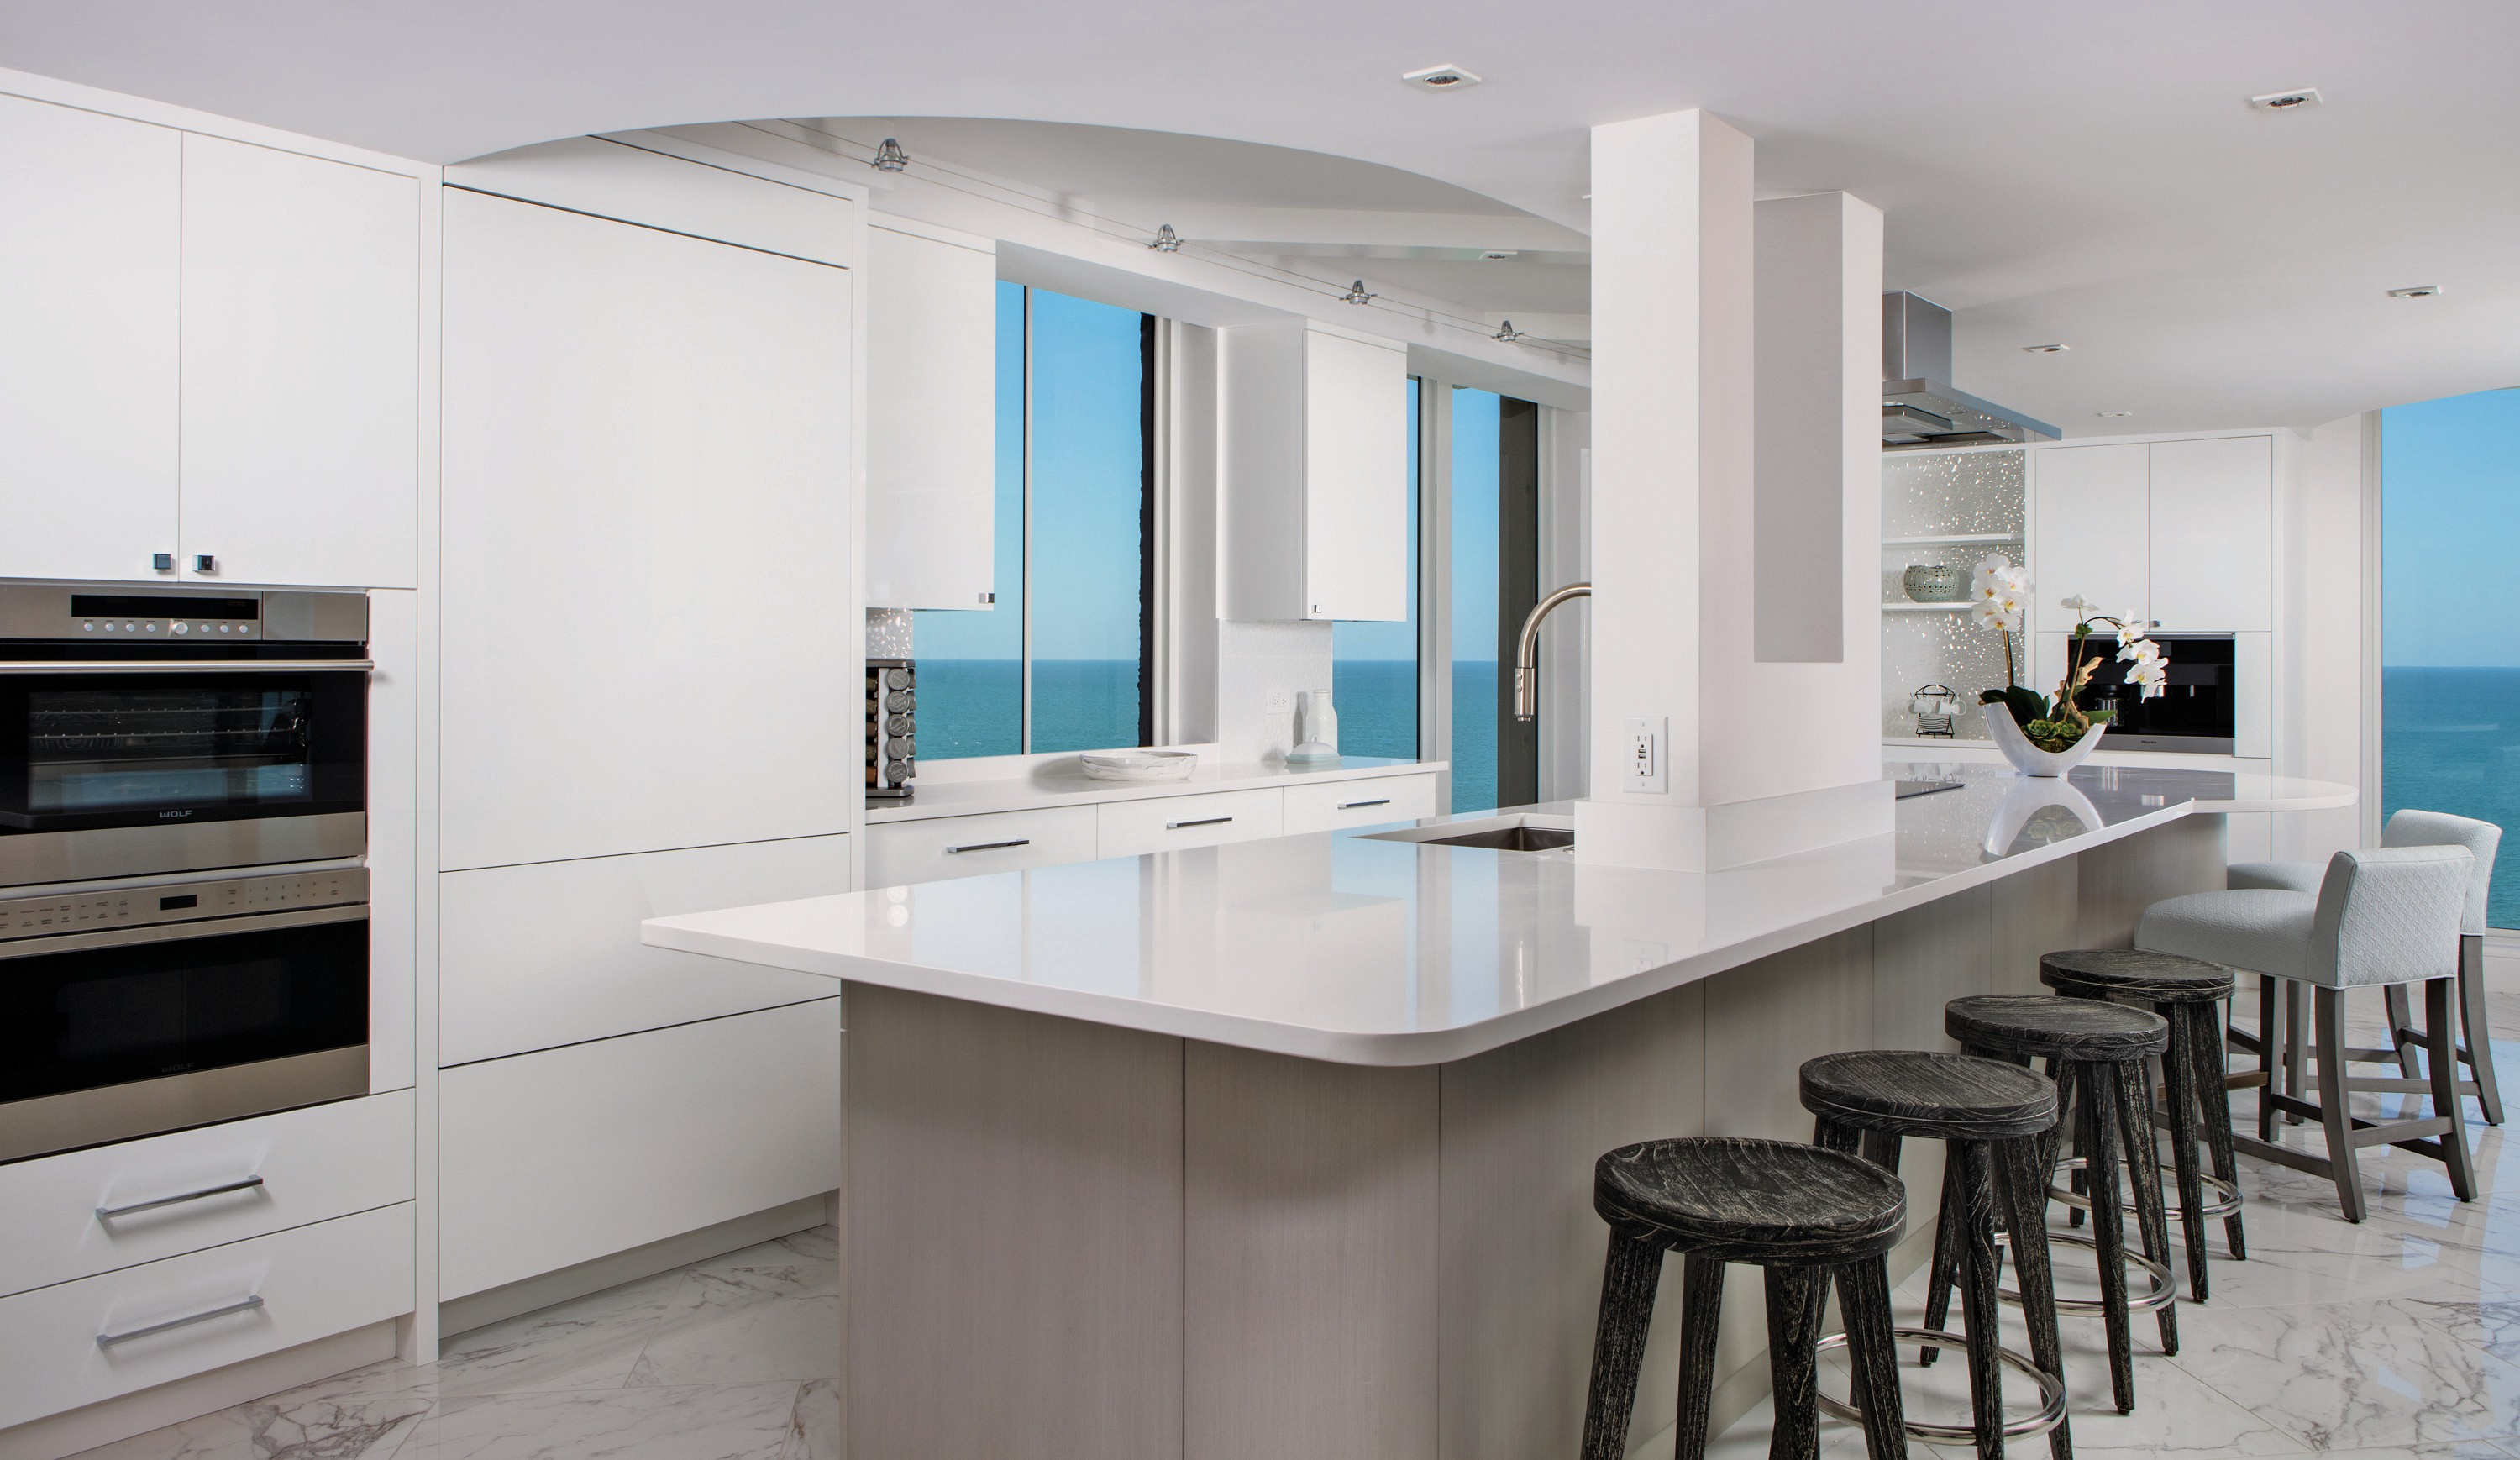 This gulf-front condo in Surfsedge was dated, dark and compartmentalized. London Bay